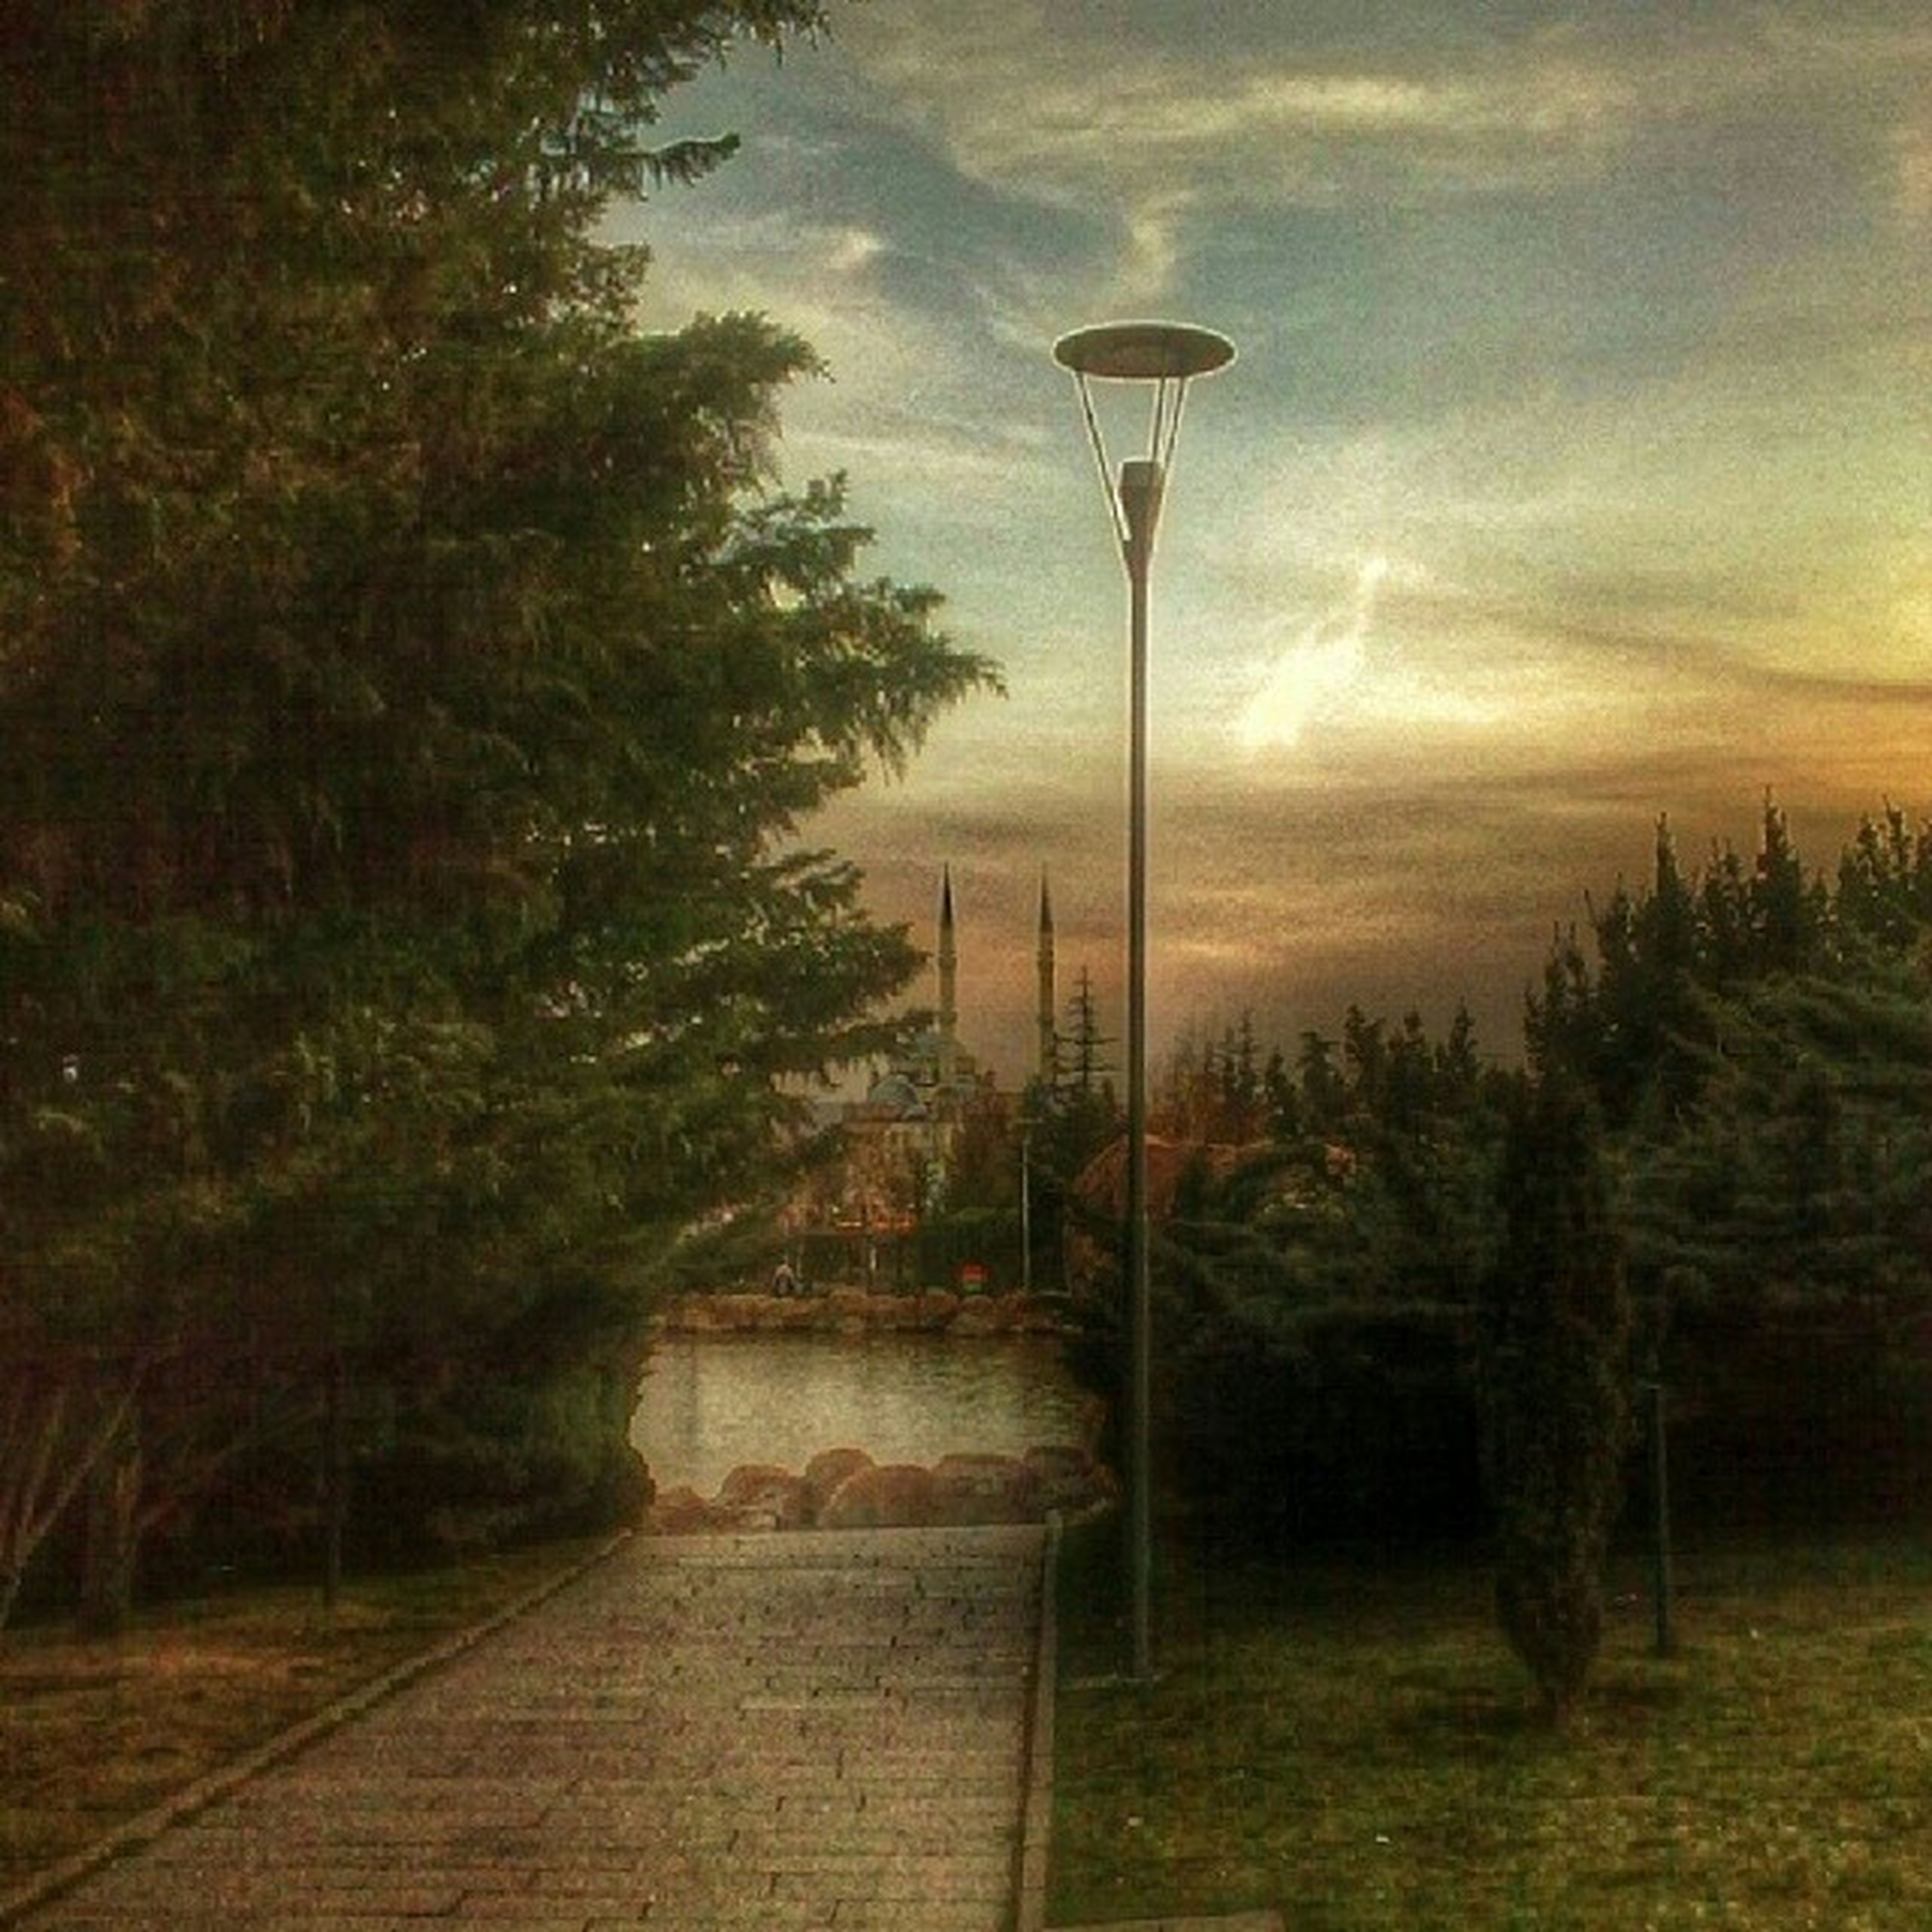 tree, street light, the way forward, sky, lighting equipment, built structure, architecture, tranquility, building exterior, footpath, cloud - sky, nature, growth, railing, no people, outdoors, walkway, illuminated, plant, tranquil scene